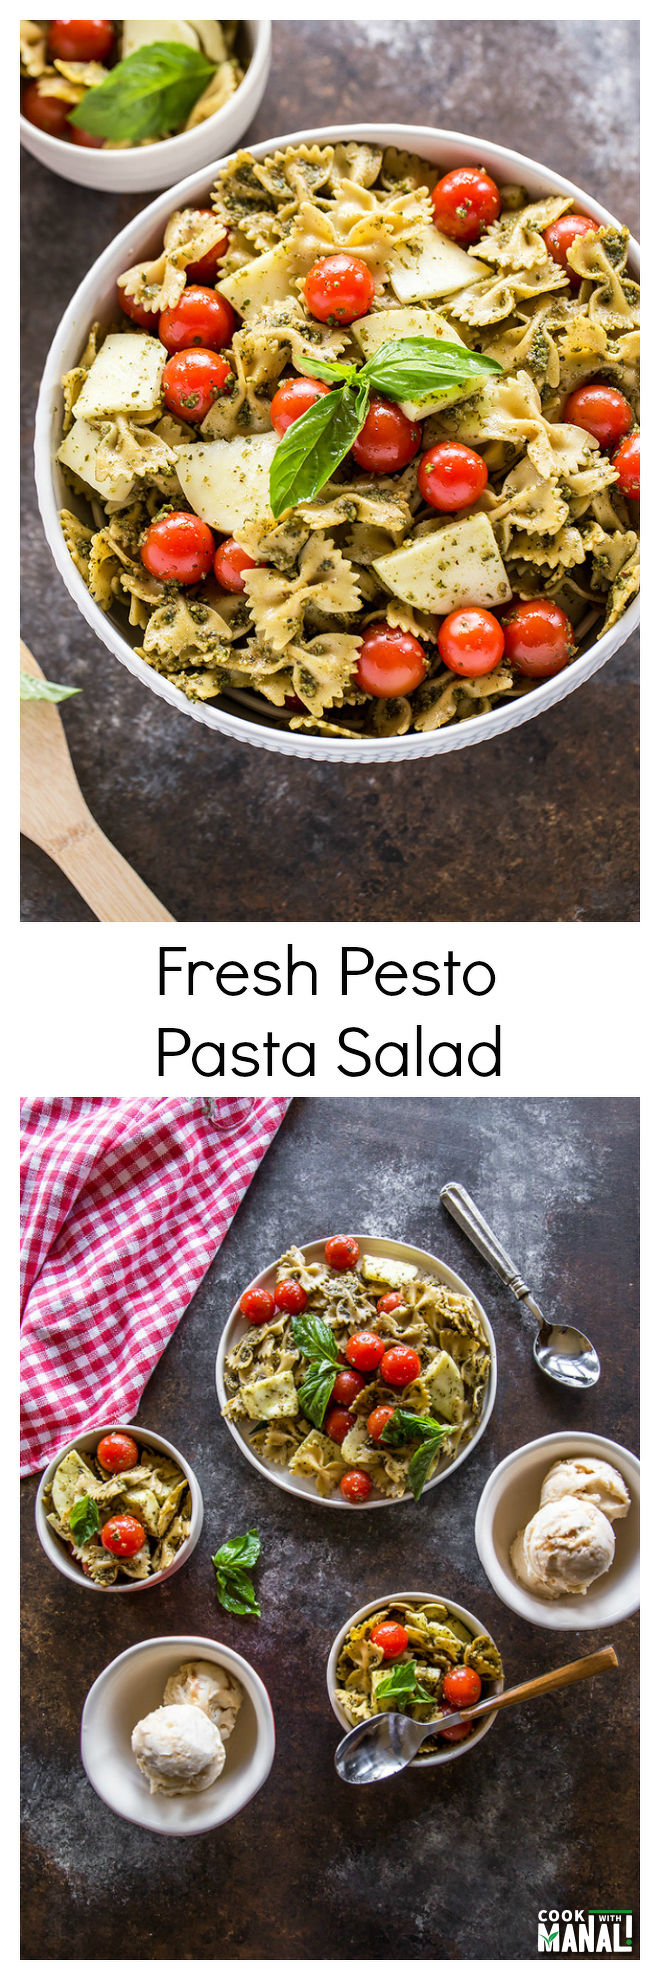 Fresh Pesto Pasta Salad-Collage